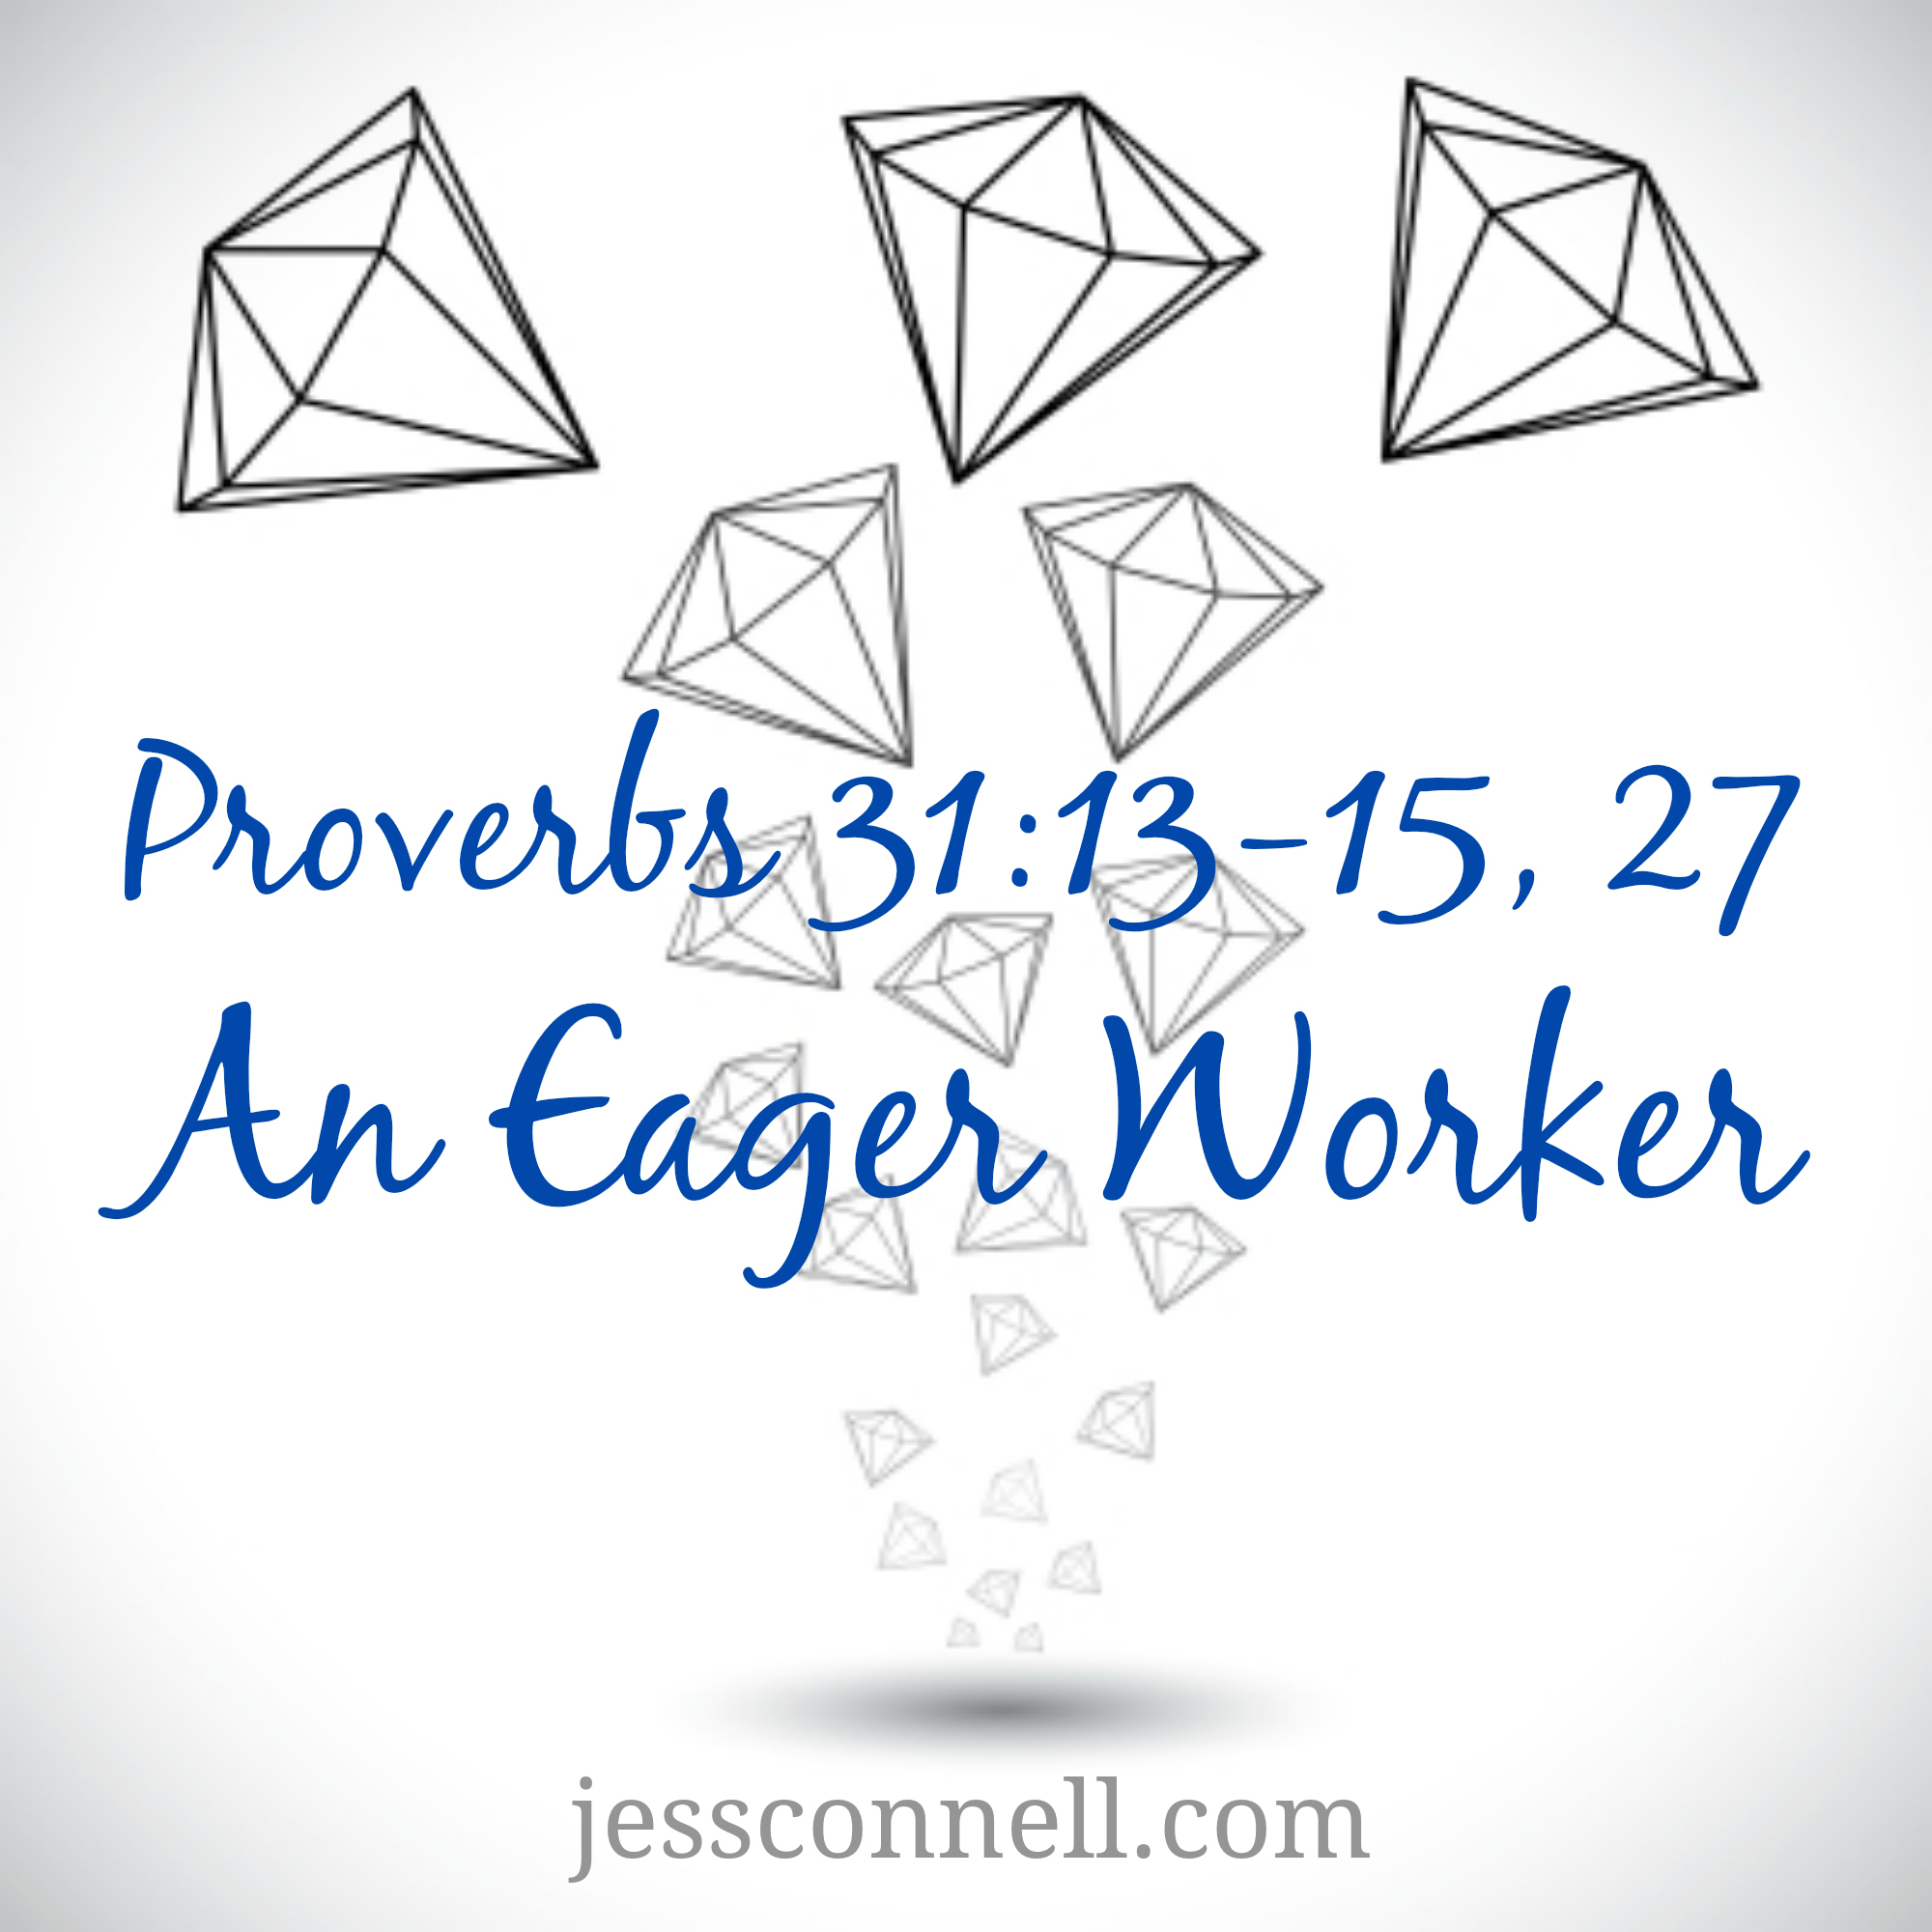 An Eager Worker / Proverbs 31:13-15, 27 // jessconnell.com